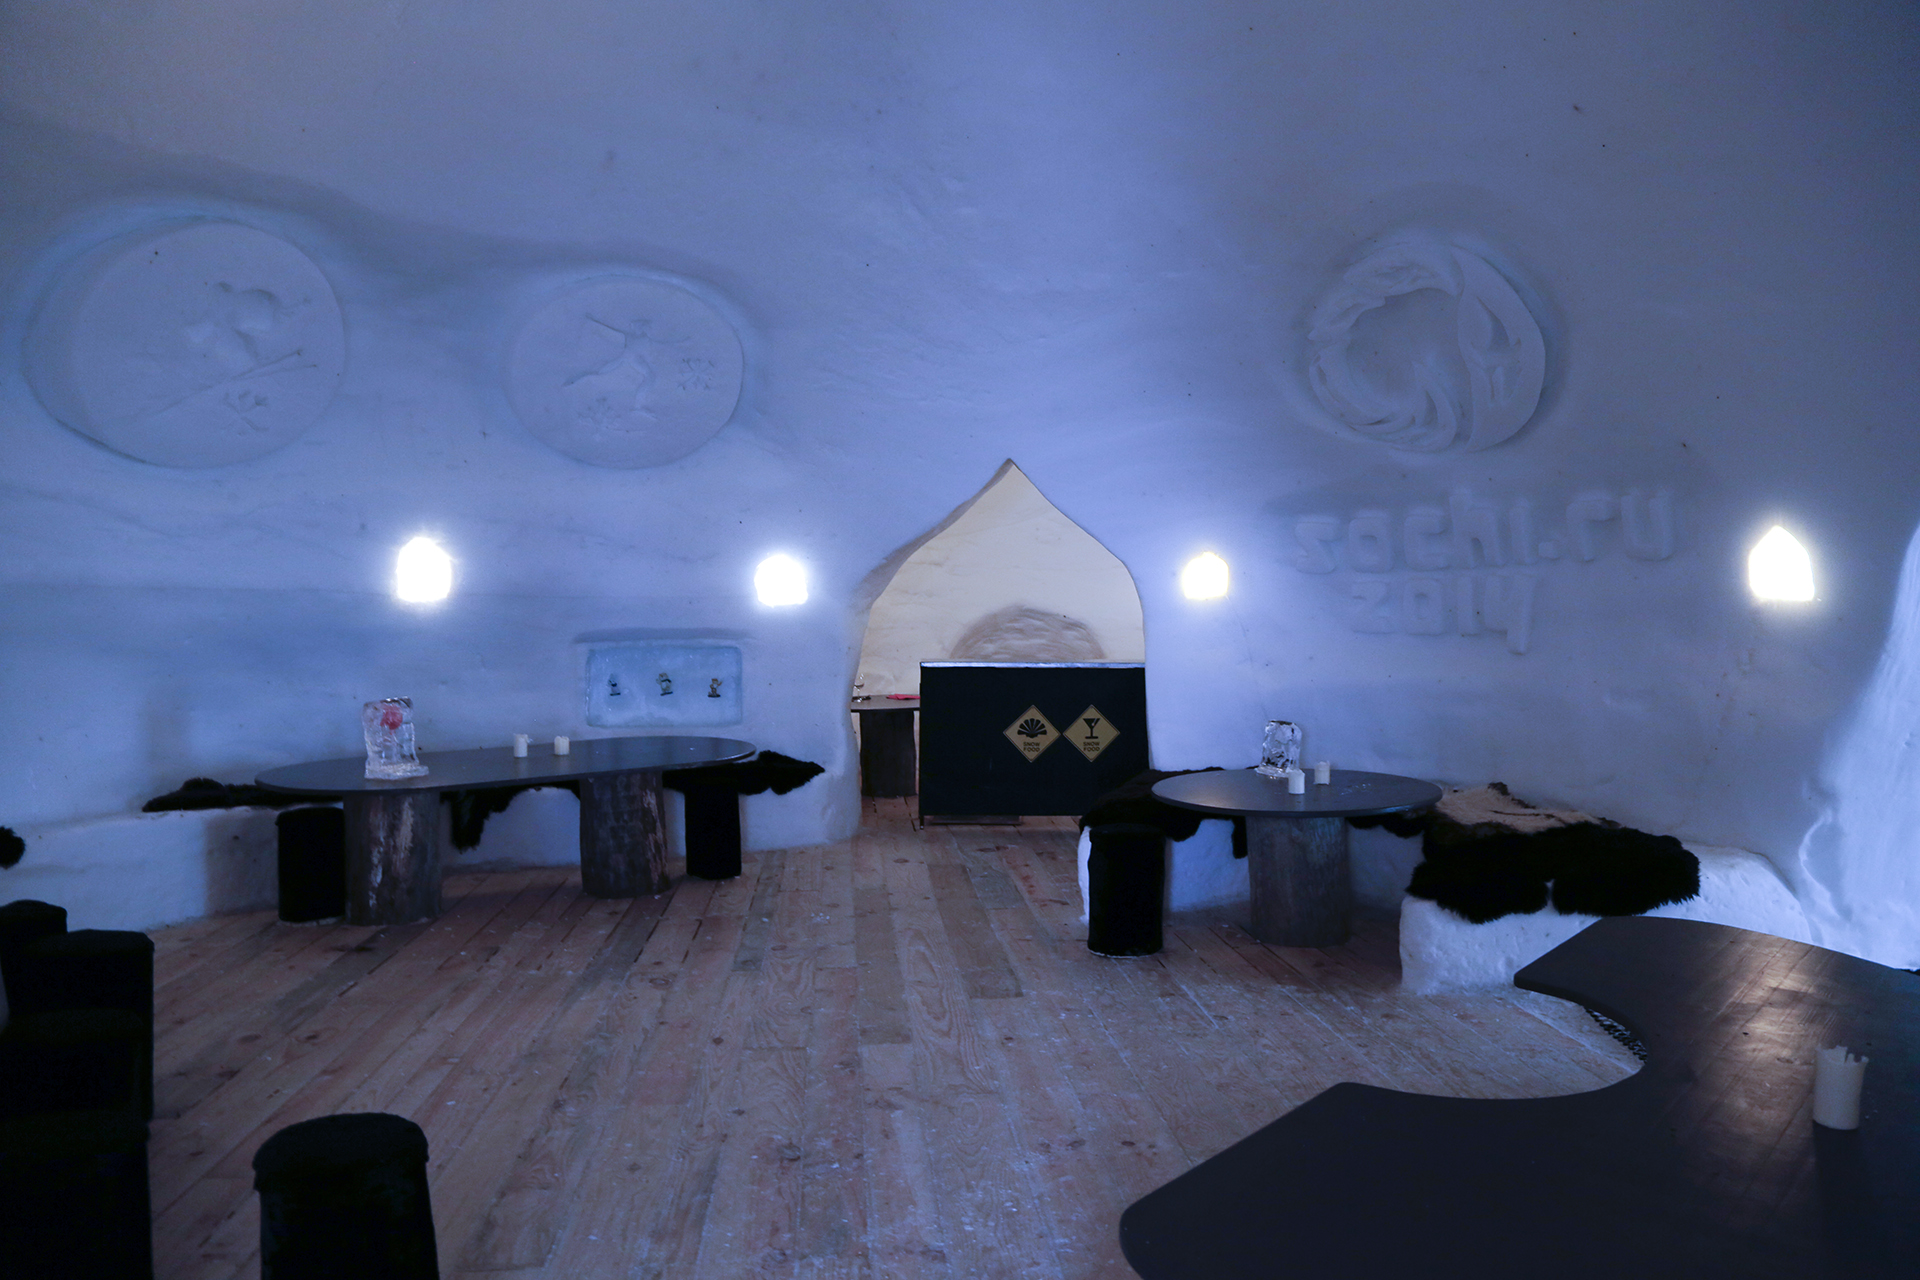 Pure Snow Top 10 Most Amazing Places To Stay In The Snow - Igloo Hotel 3.jpg